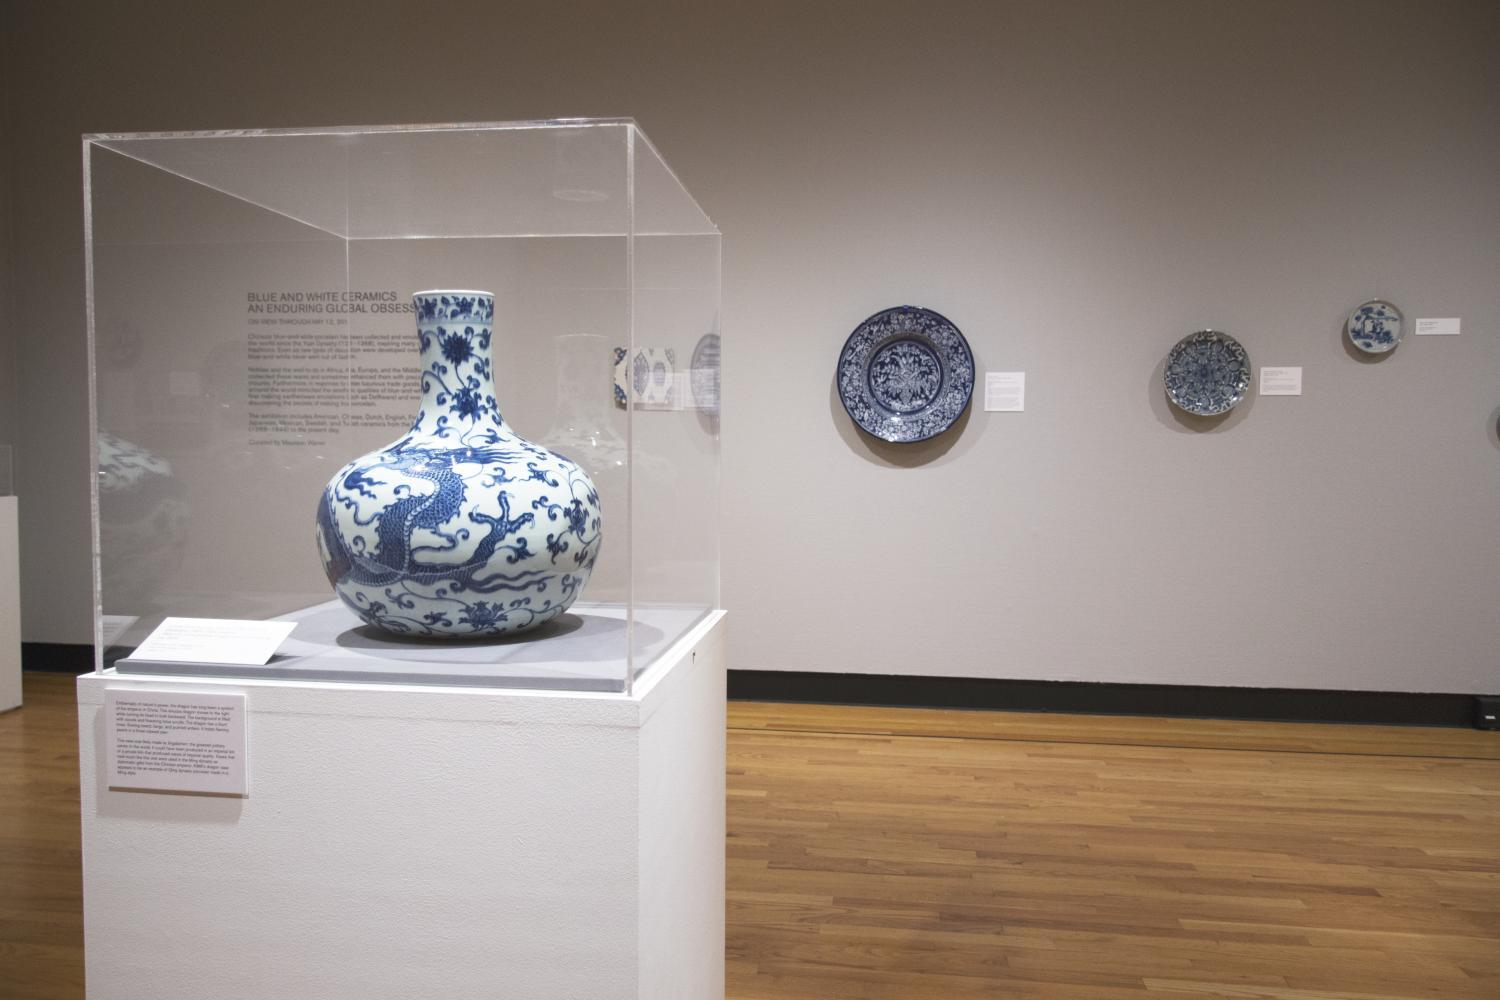 Blue & White Ceramics: An Enduring Global Obsession, installation at Krannert Art Museum, 2018. © Board of Trustees of the University of Illinois